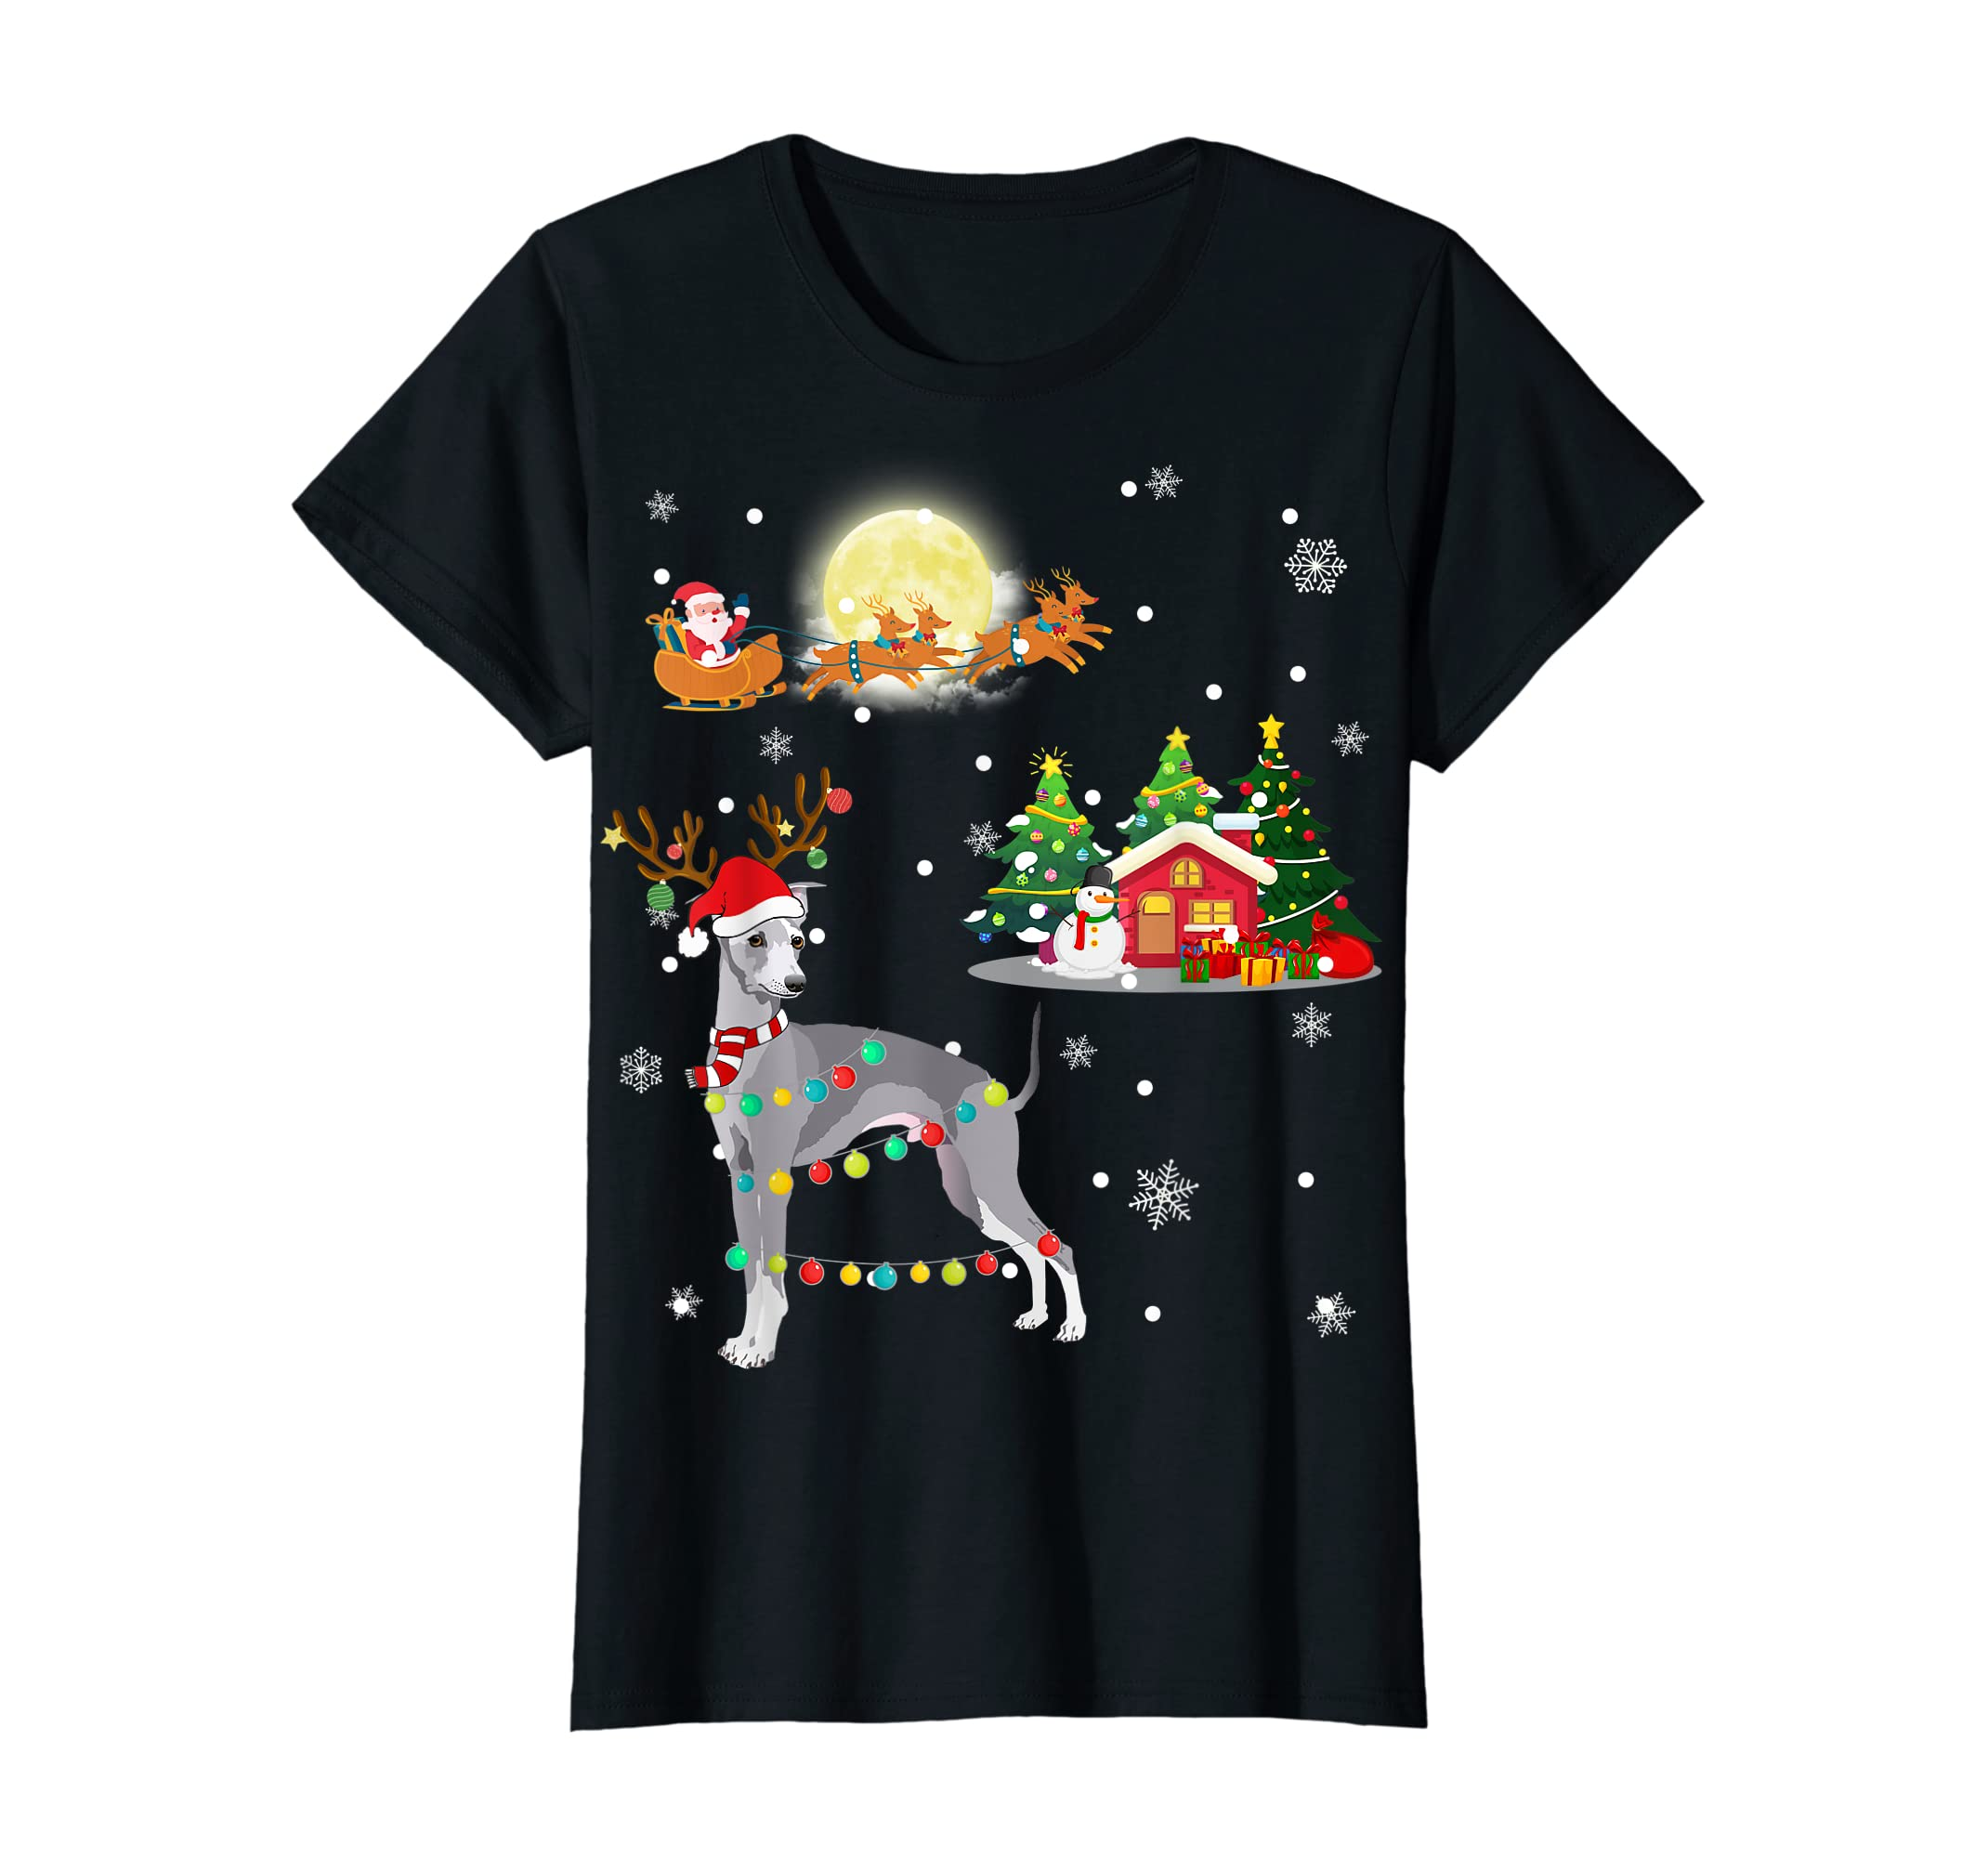 Greyhound Dog Led Light Christmas 2019 Gift T-Shirt-Women's T-Shirt-Black